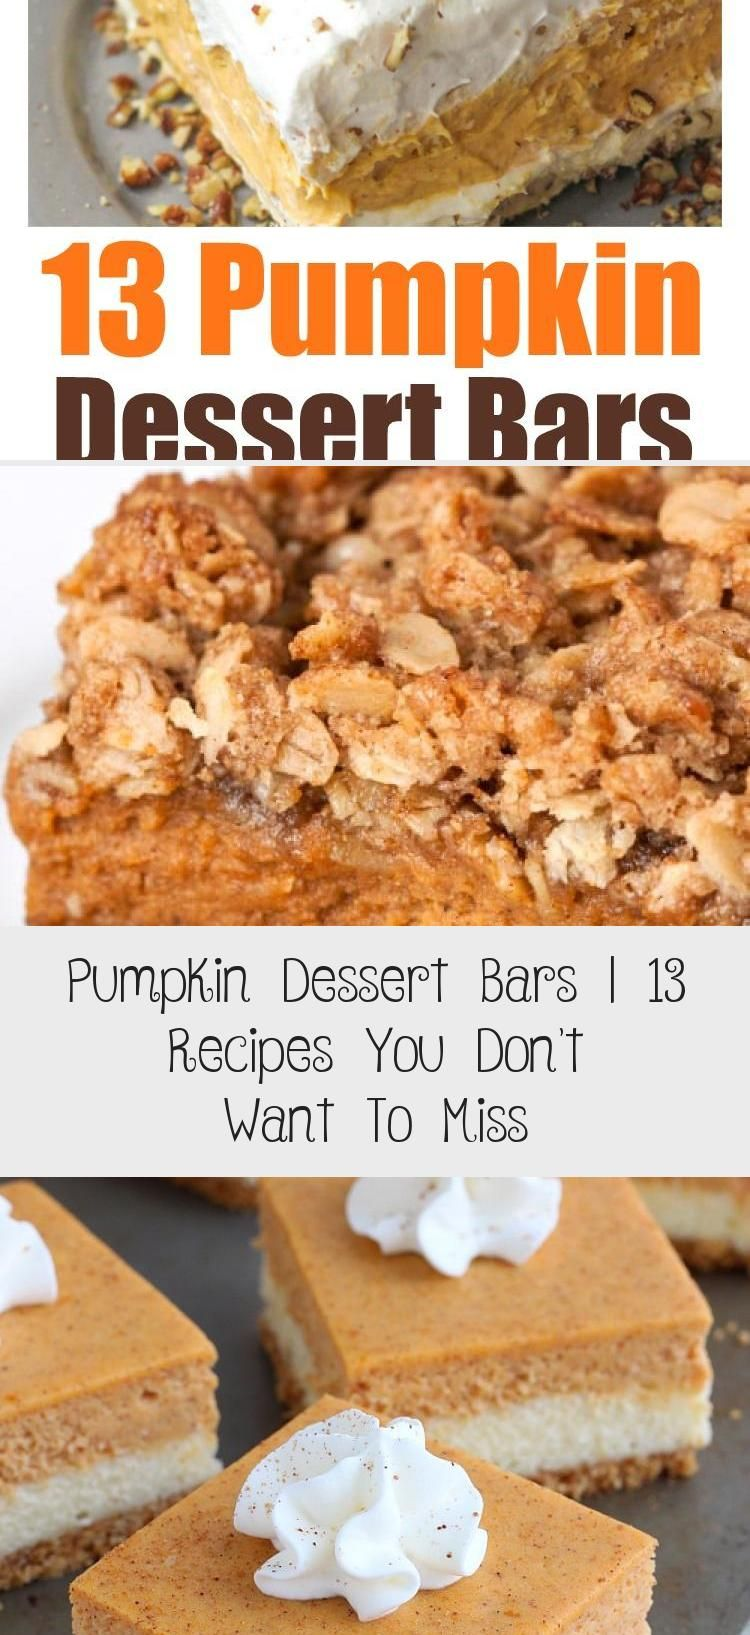 Photo of Yummy pumpkin dessert bars. I've rounded up recipes for the best pumpkin desse…